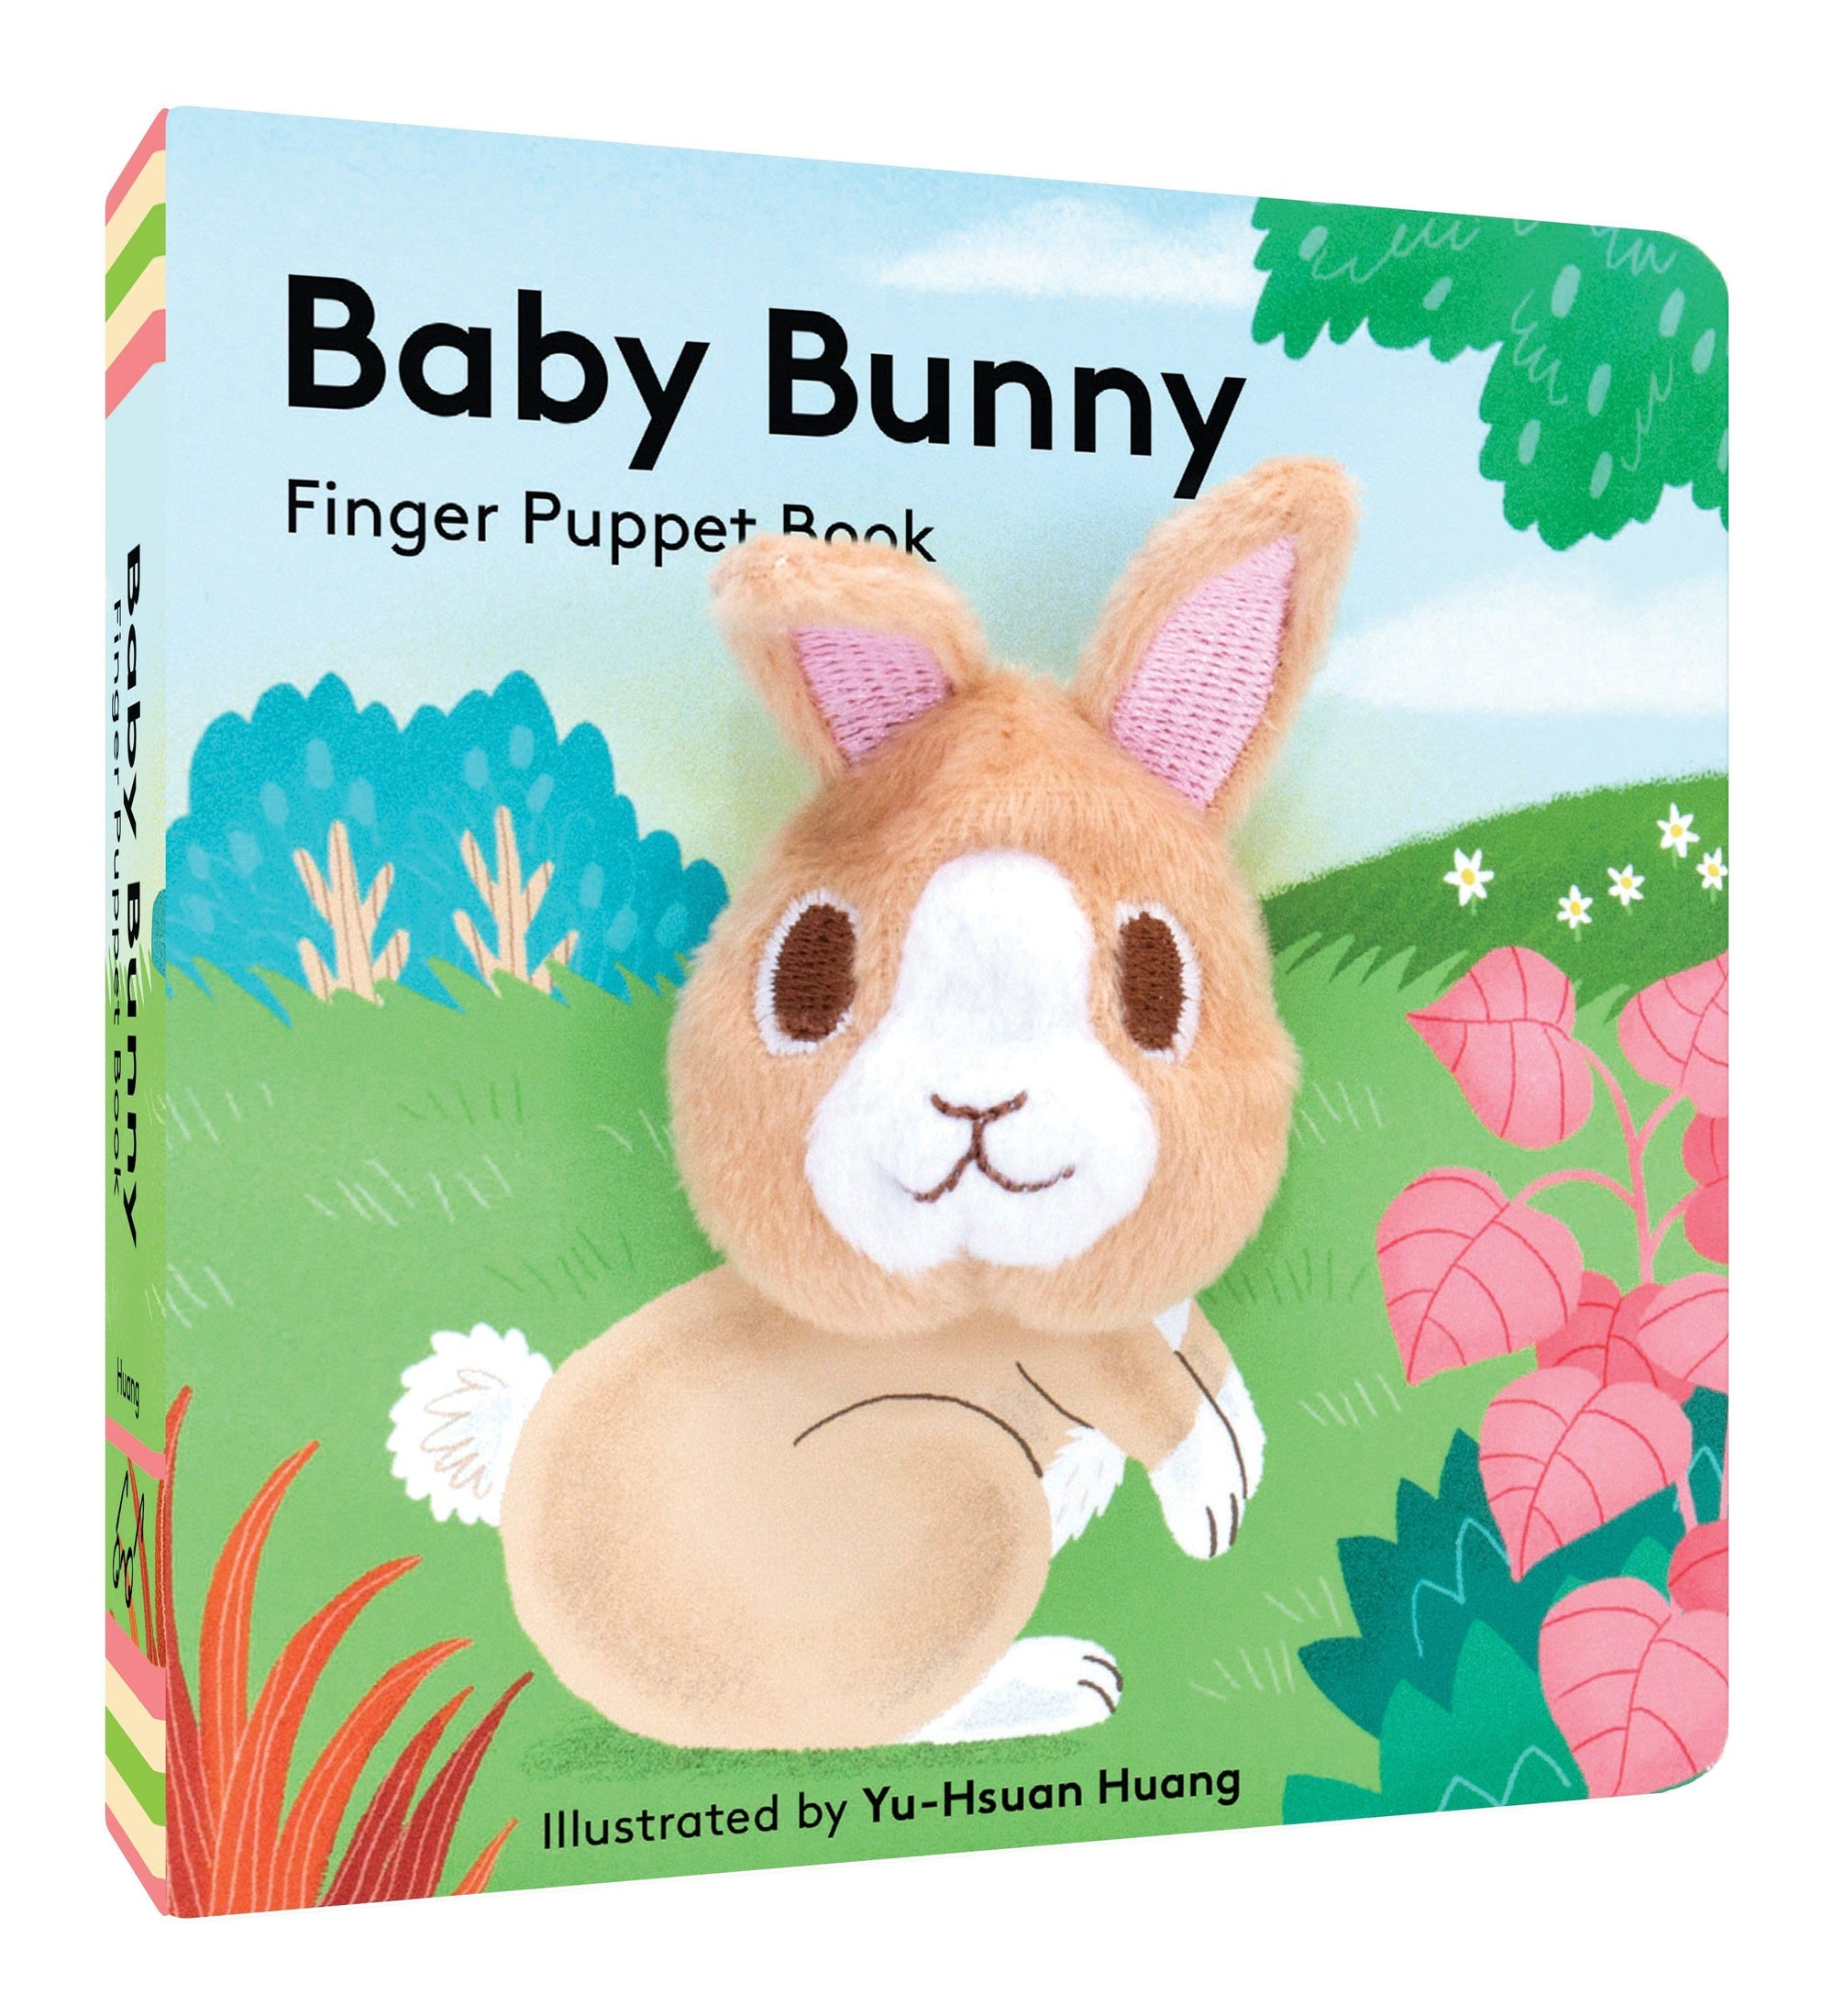 Baby Bunny Finger Puppet Book - BouChic